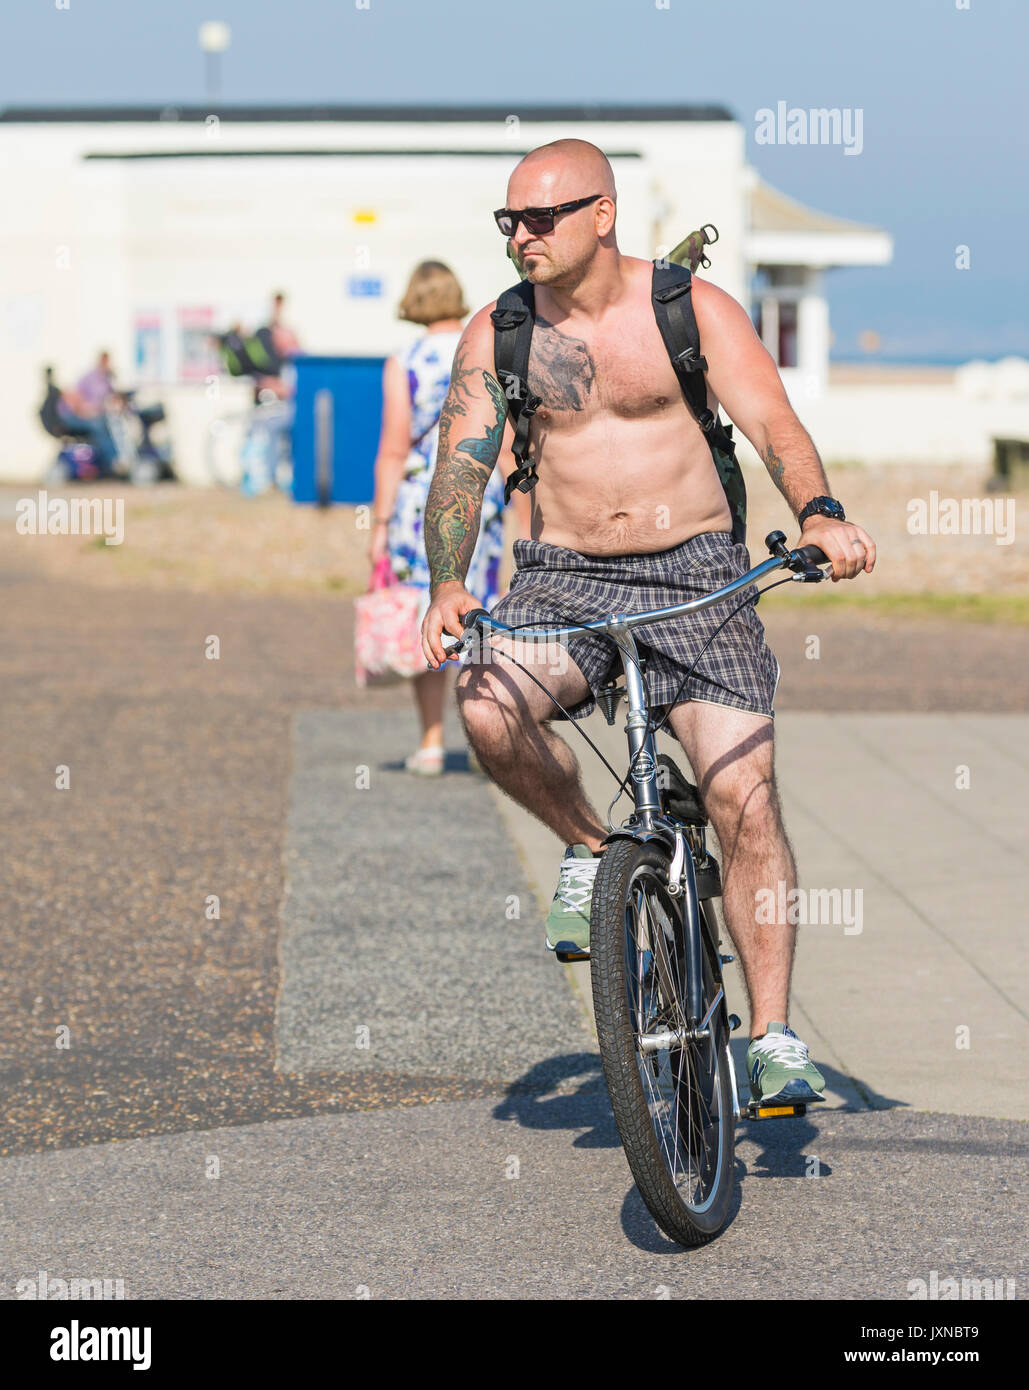 Shirtless man riding a bicycle in Summer on a hot day in the UK. - Stock Image